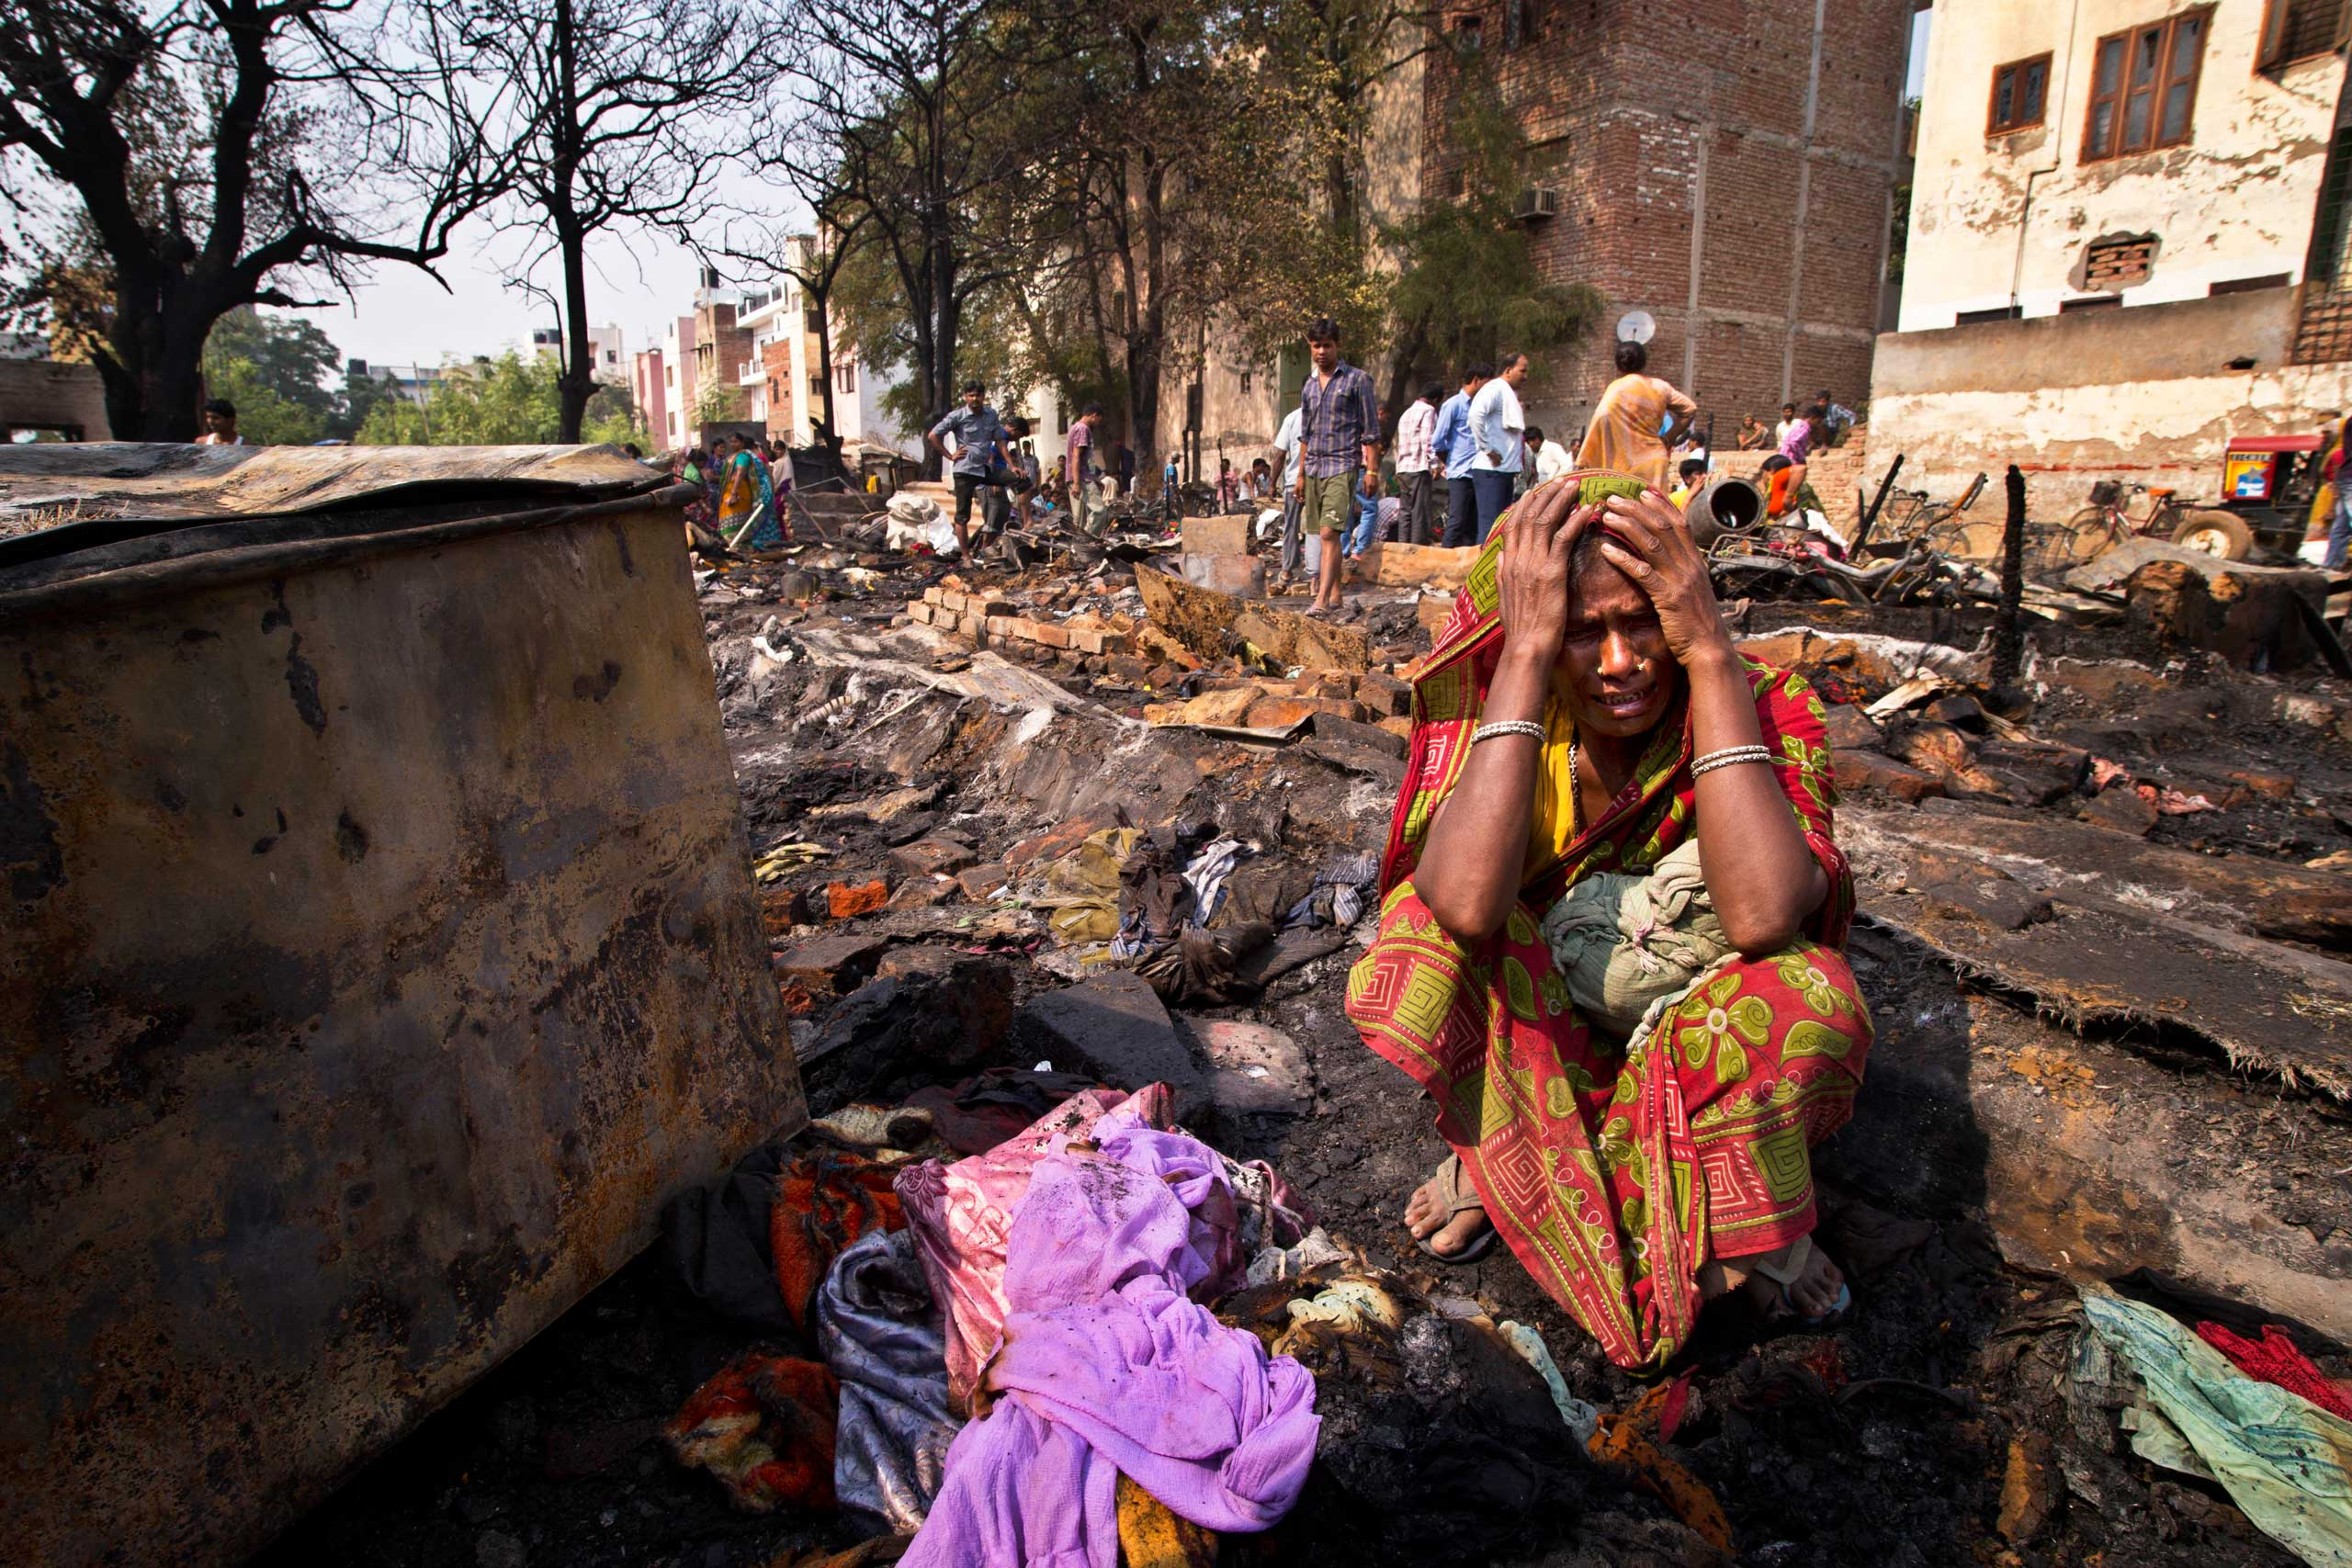 Oct. 21, 2014.  Romela Bibi cries as she holds on to a bundle of burnt money wrapped in clothes that she says amounted to nearly US$ 2,000, saved for her daughter's marriage, after fire burnt scores of houses at a slum in Gurgaon, India. There were no casualties reported. The cause of the fire is unknown.